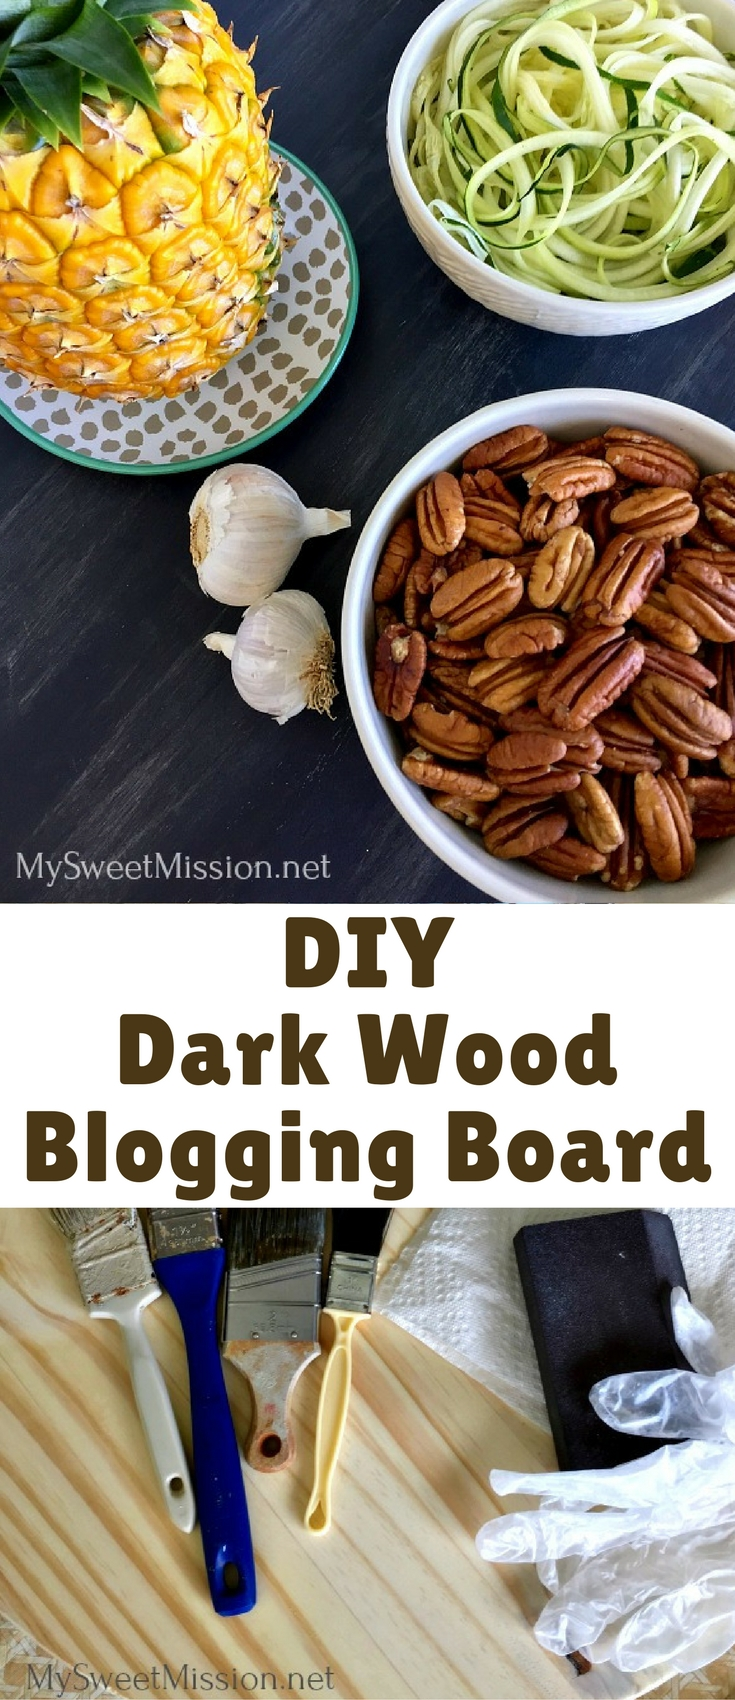 I'm sharing a DIY Dark Wooden Blogging Board Tutorial. This look and technique is easy to do, and fantastic for bloggers and those who love wooden craft projects too! All you need are a few supplies, a little time and viola – you've got yourself a beautiful, dark wooden blogging board.